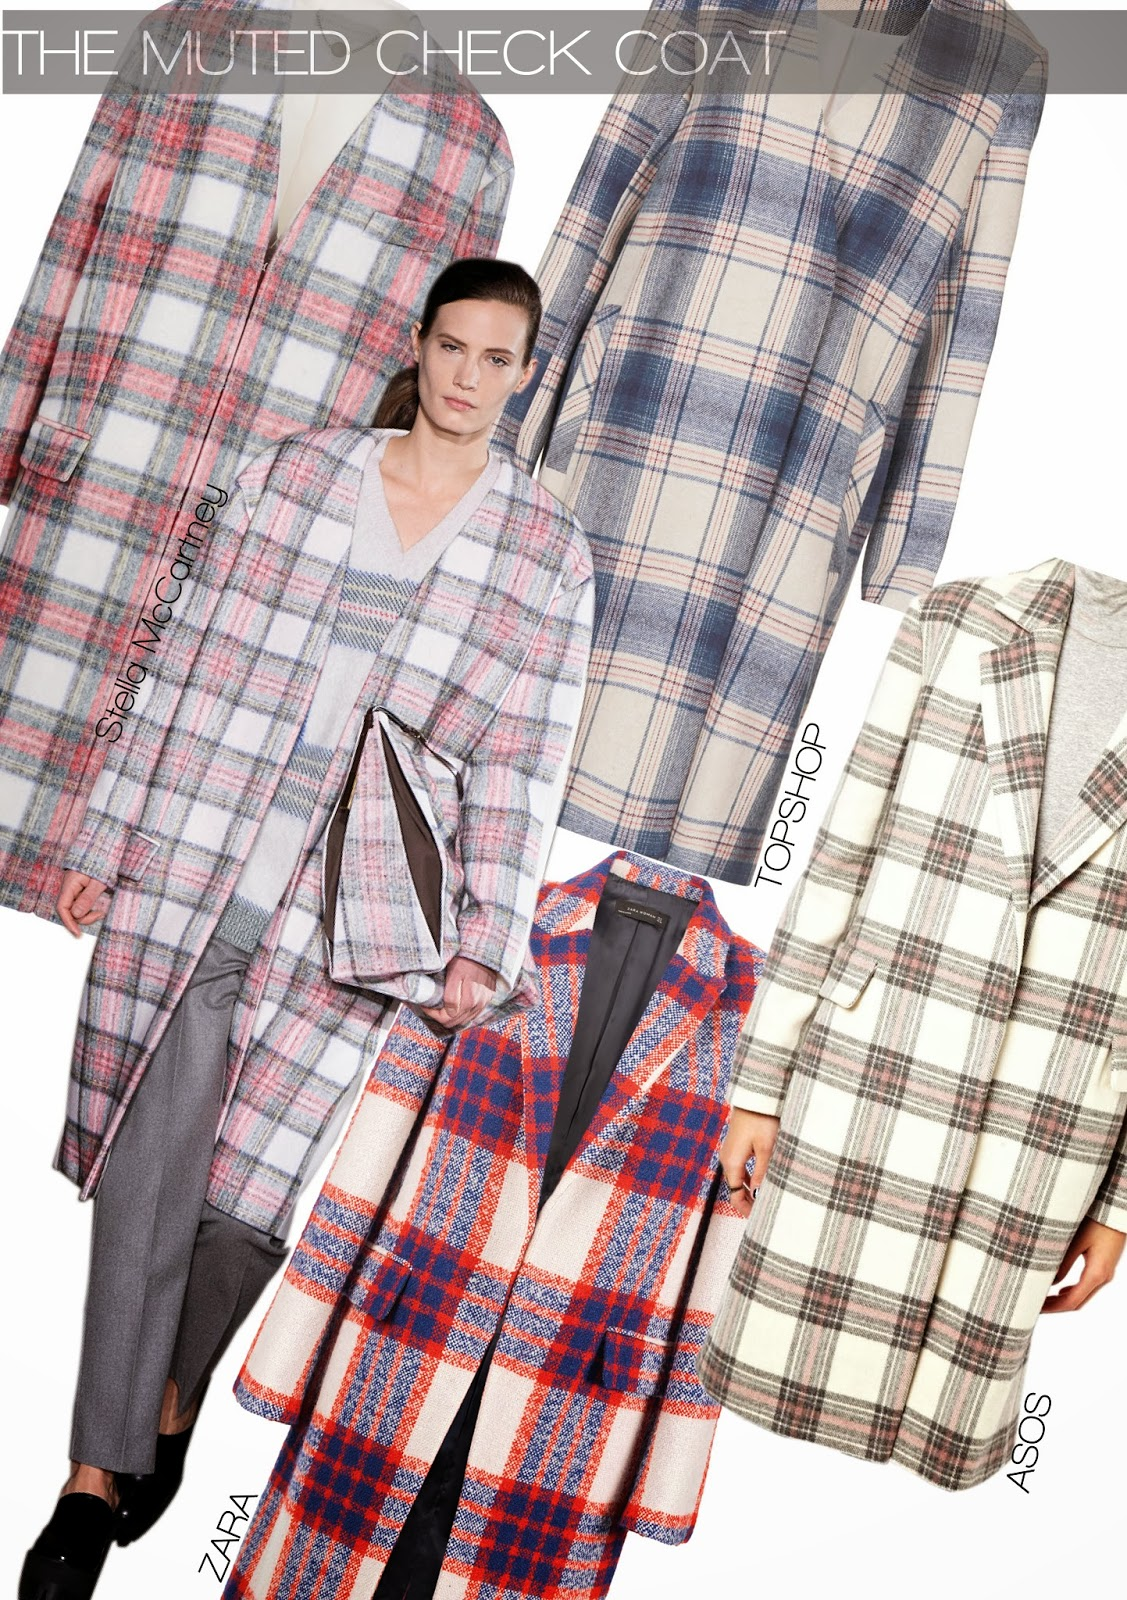 The Muted Check Coat Trend